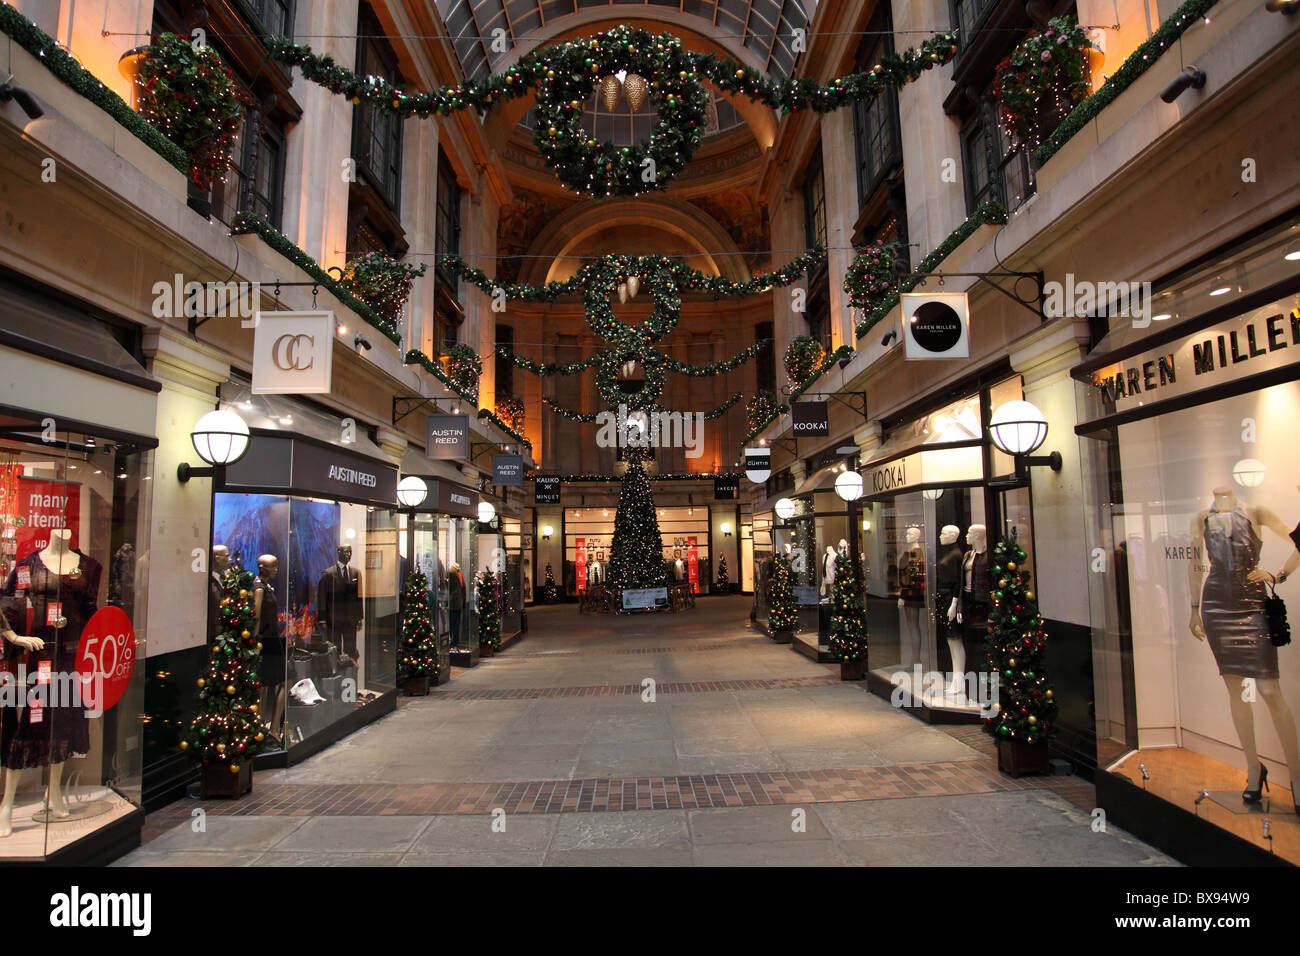 The Exchange shopping arcade in the Council House, Nottingham, England, U.K. - Stock Image